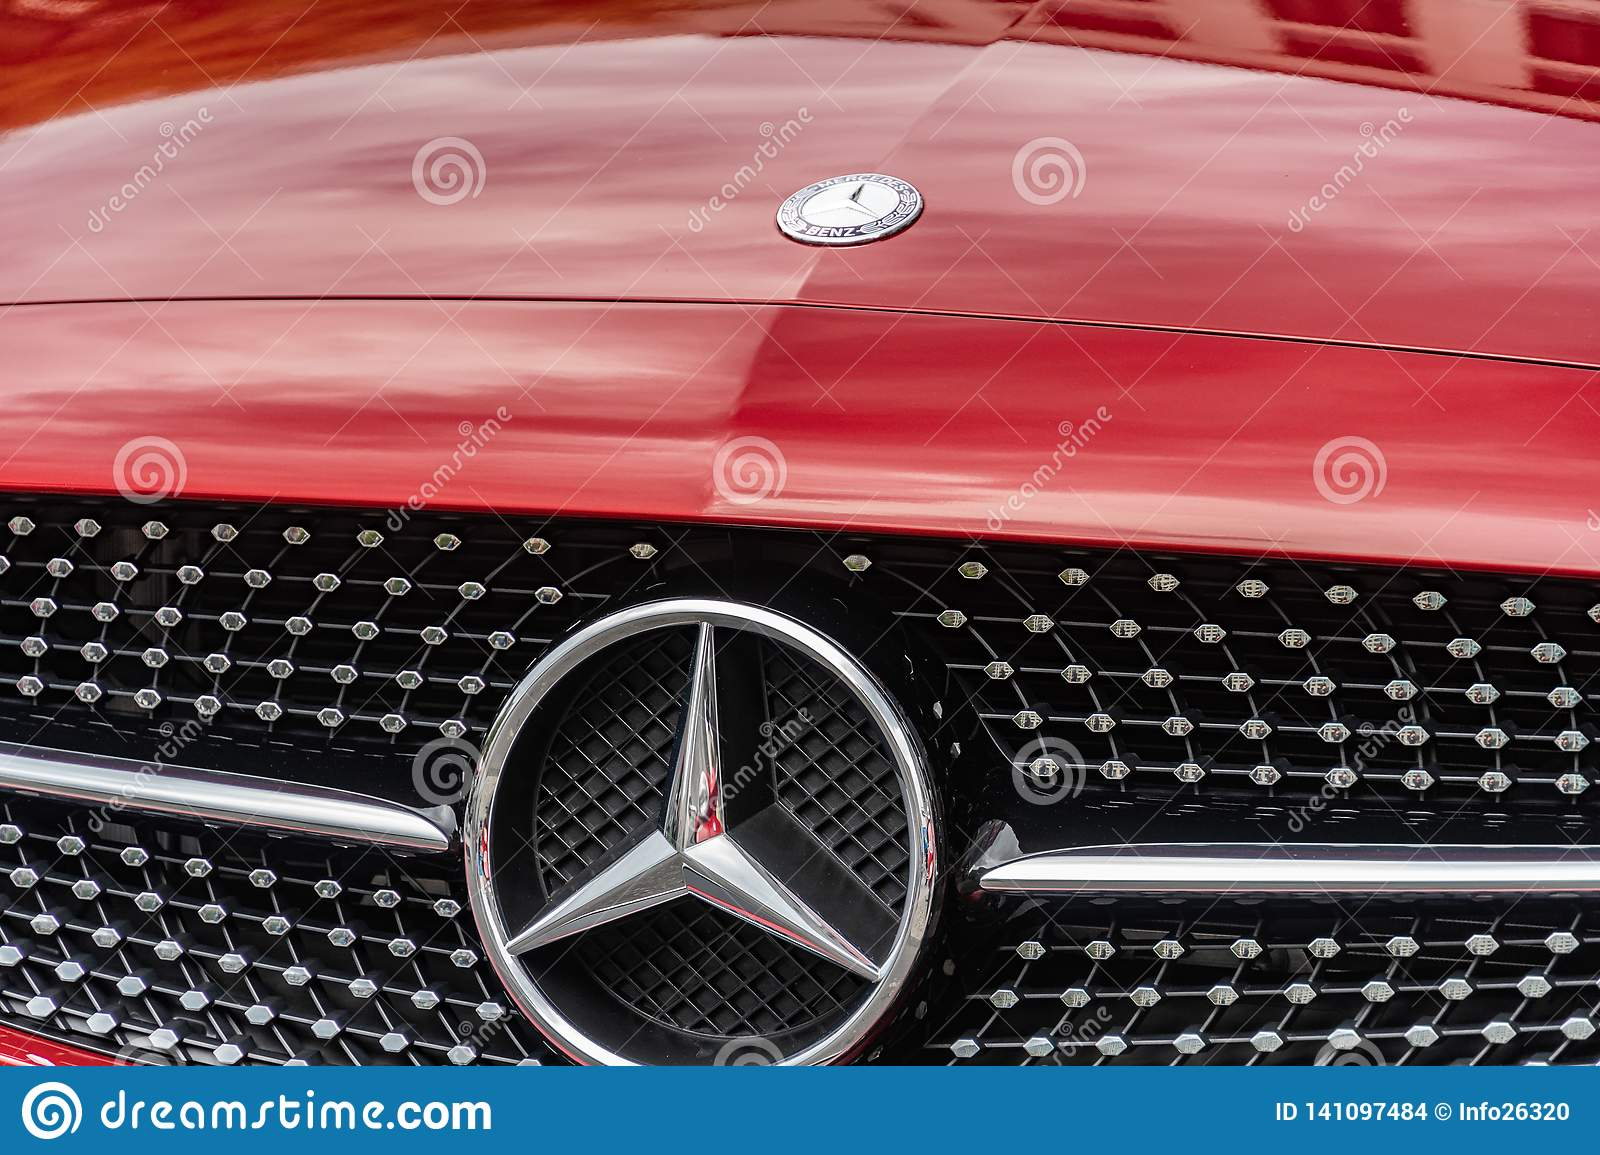 Mercedes Benz Car Emblem Editorial Stock Image Image Of Front 141097484